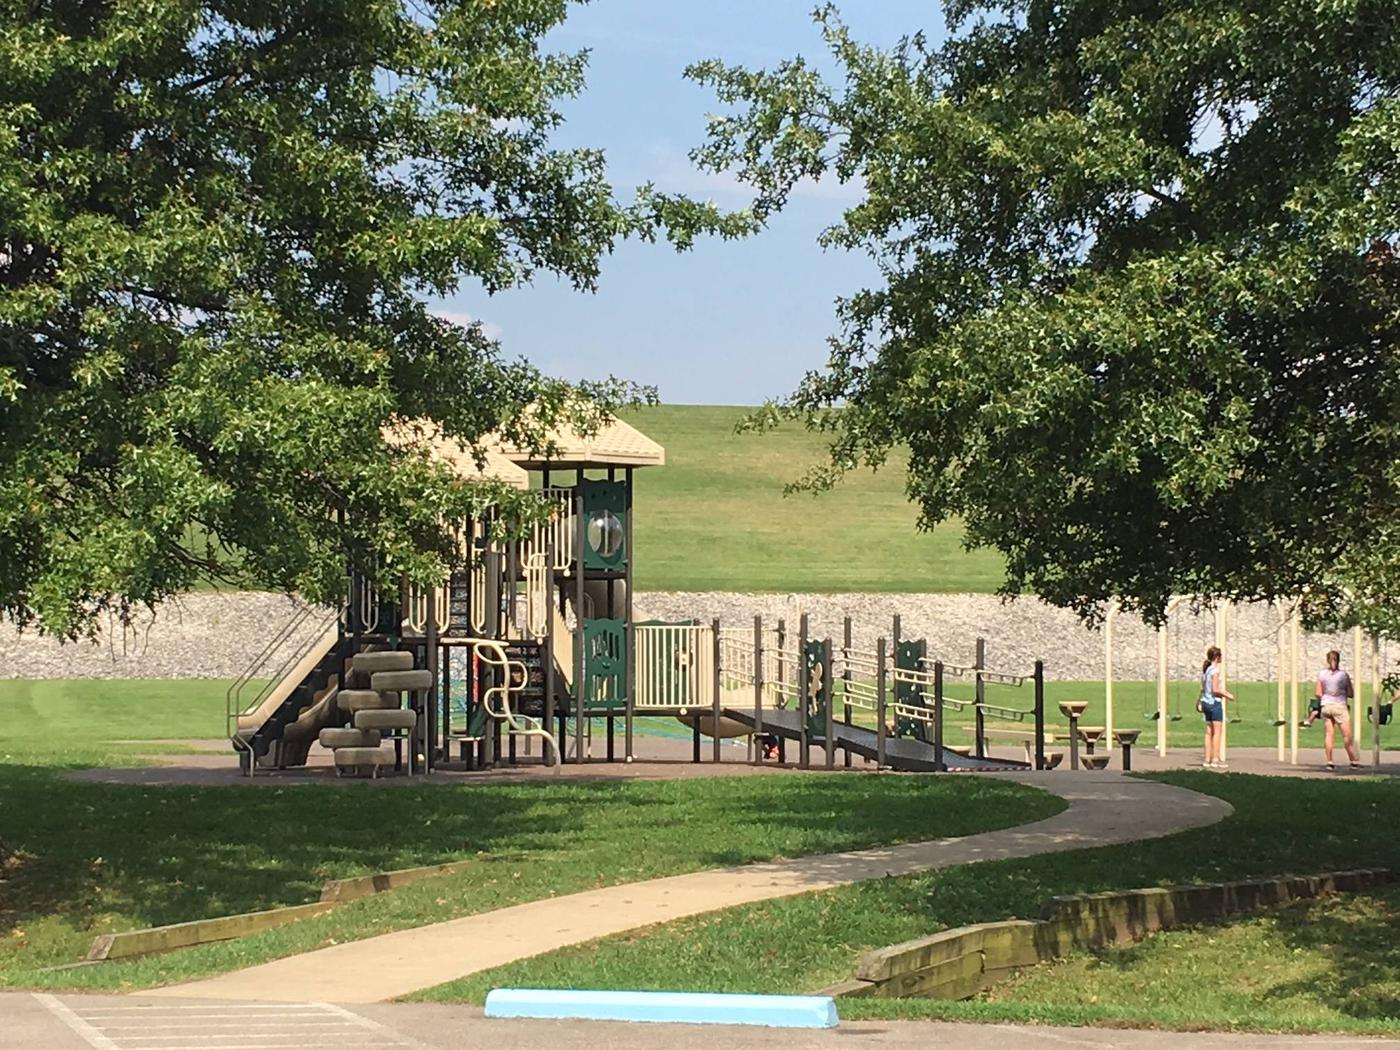 PlaygroundPlayground located in between the Maple and Oak Picnic Shelters designed for 5-12 year old children.